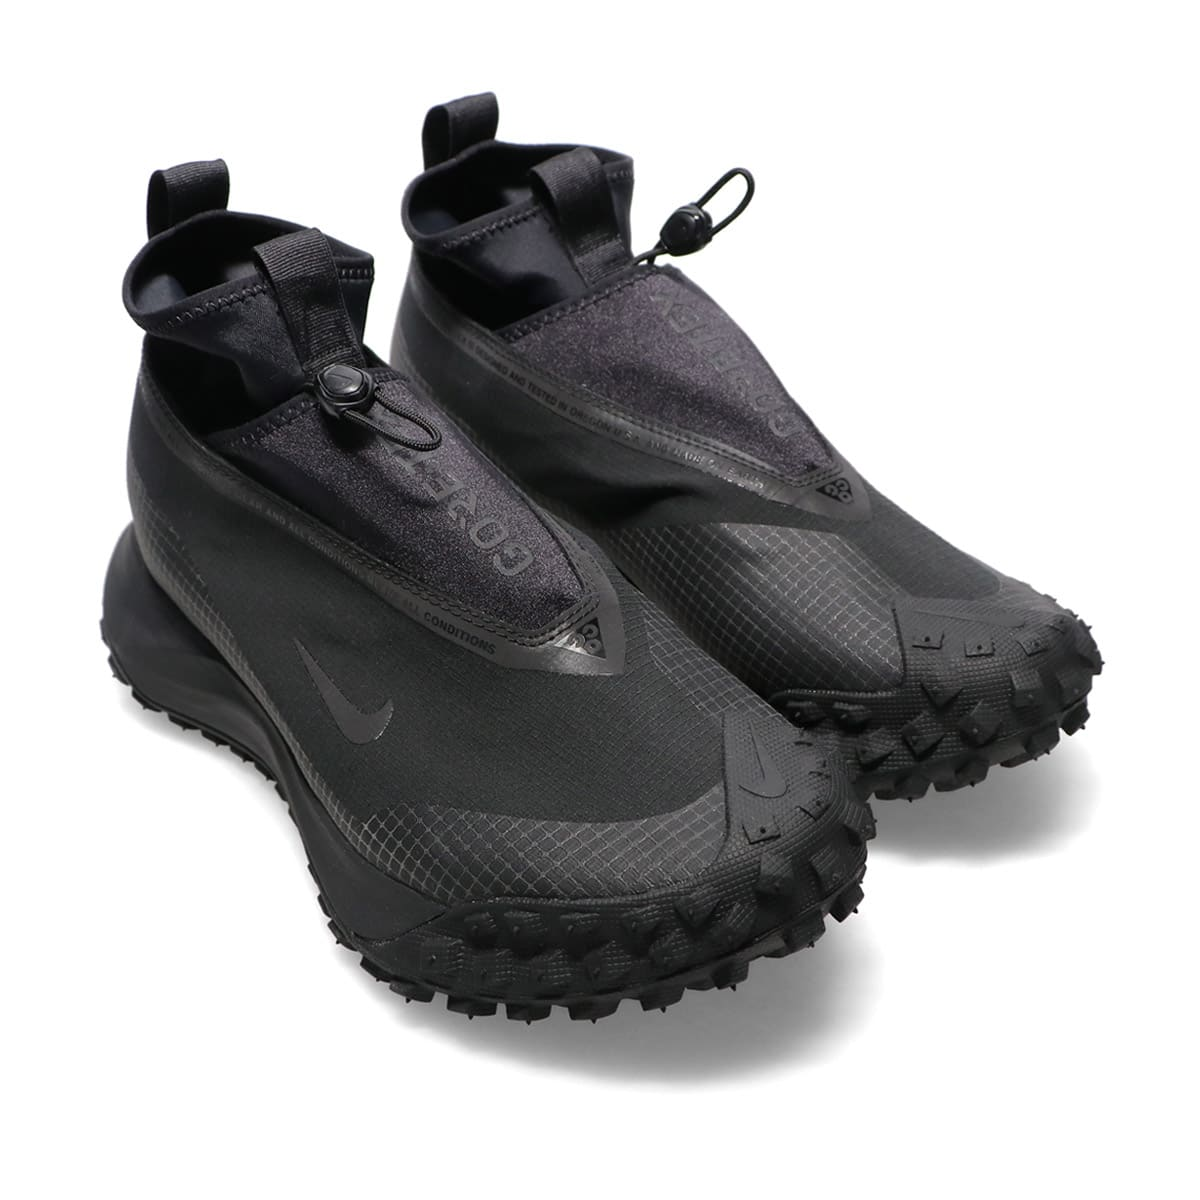 NIKE ACG MOUNTAIN FLY GORE-TEX BLACK/BLACK-DARK GREY 20HO-S_photo_large